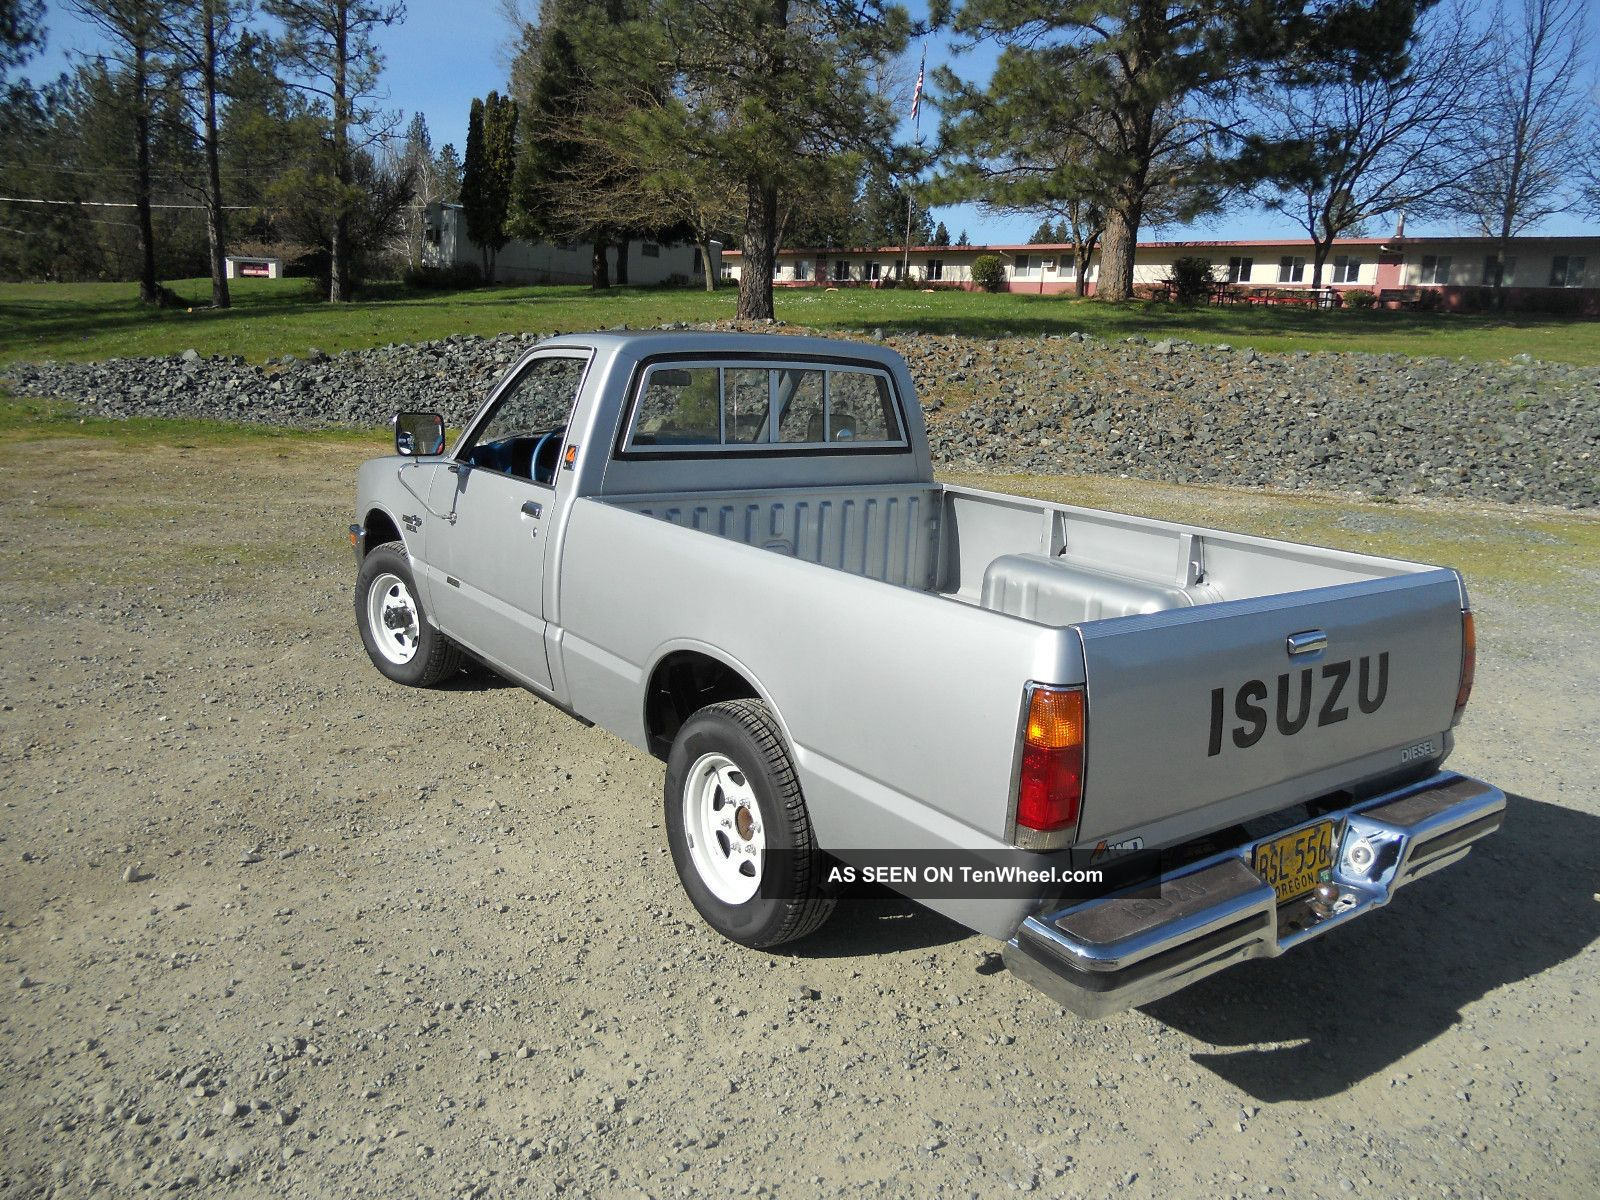 1981 Chevy Luv 4x4 Diesel For Sale Autos Post